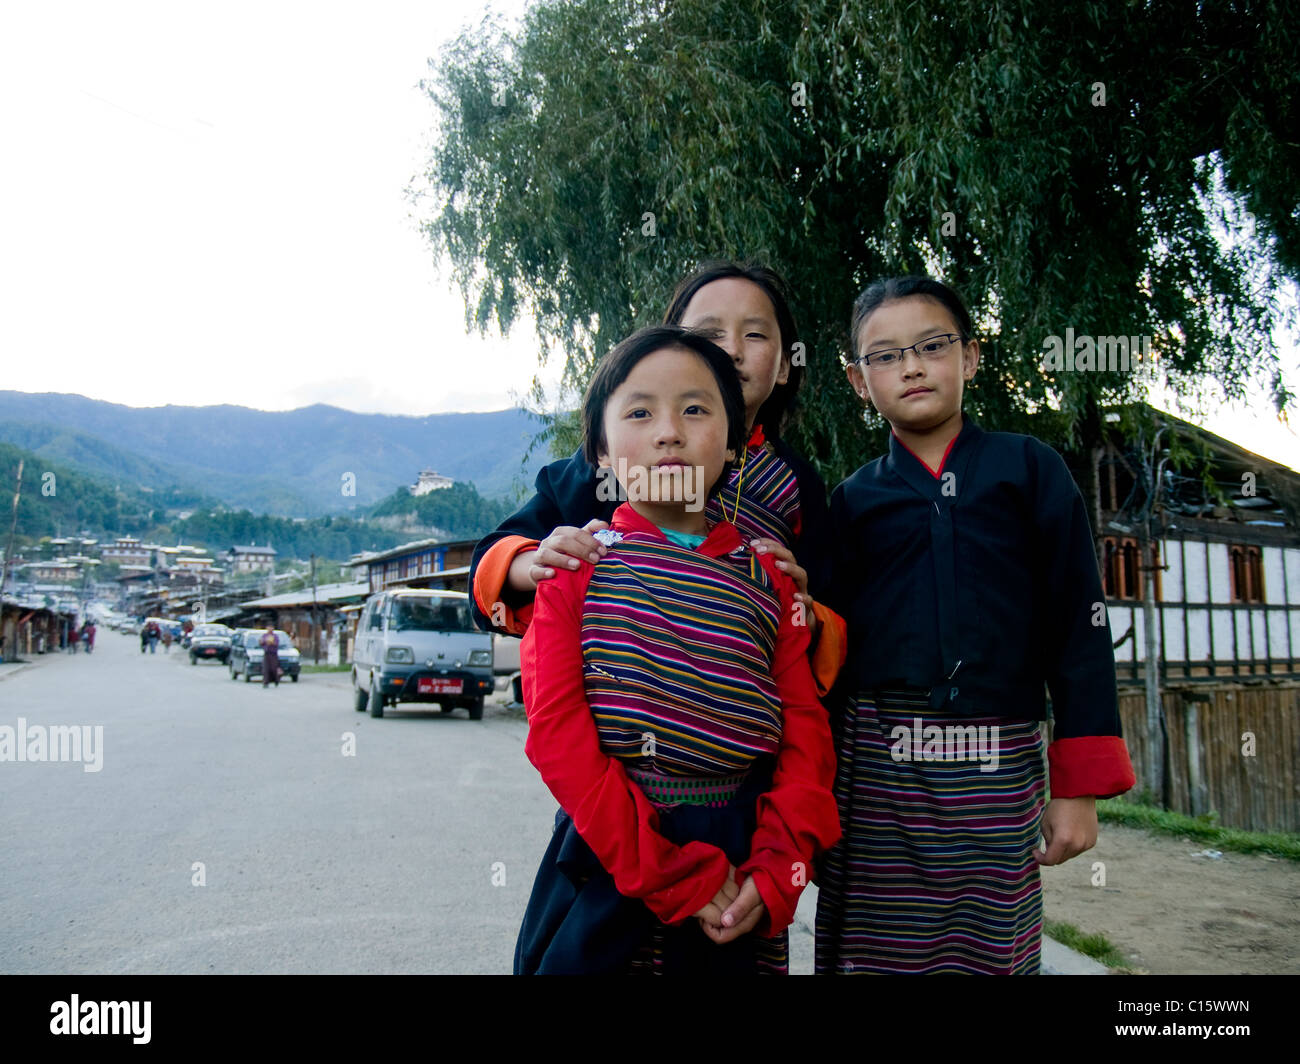 Young girls wearing traditional Kira dresses in Bumthang, Bhutan - Stock Image